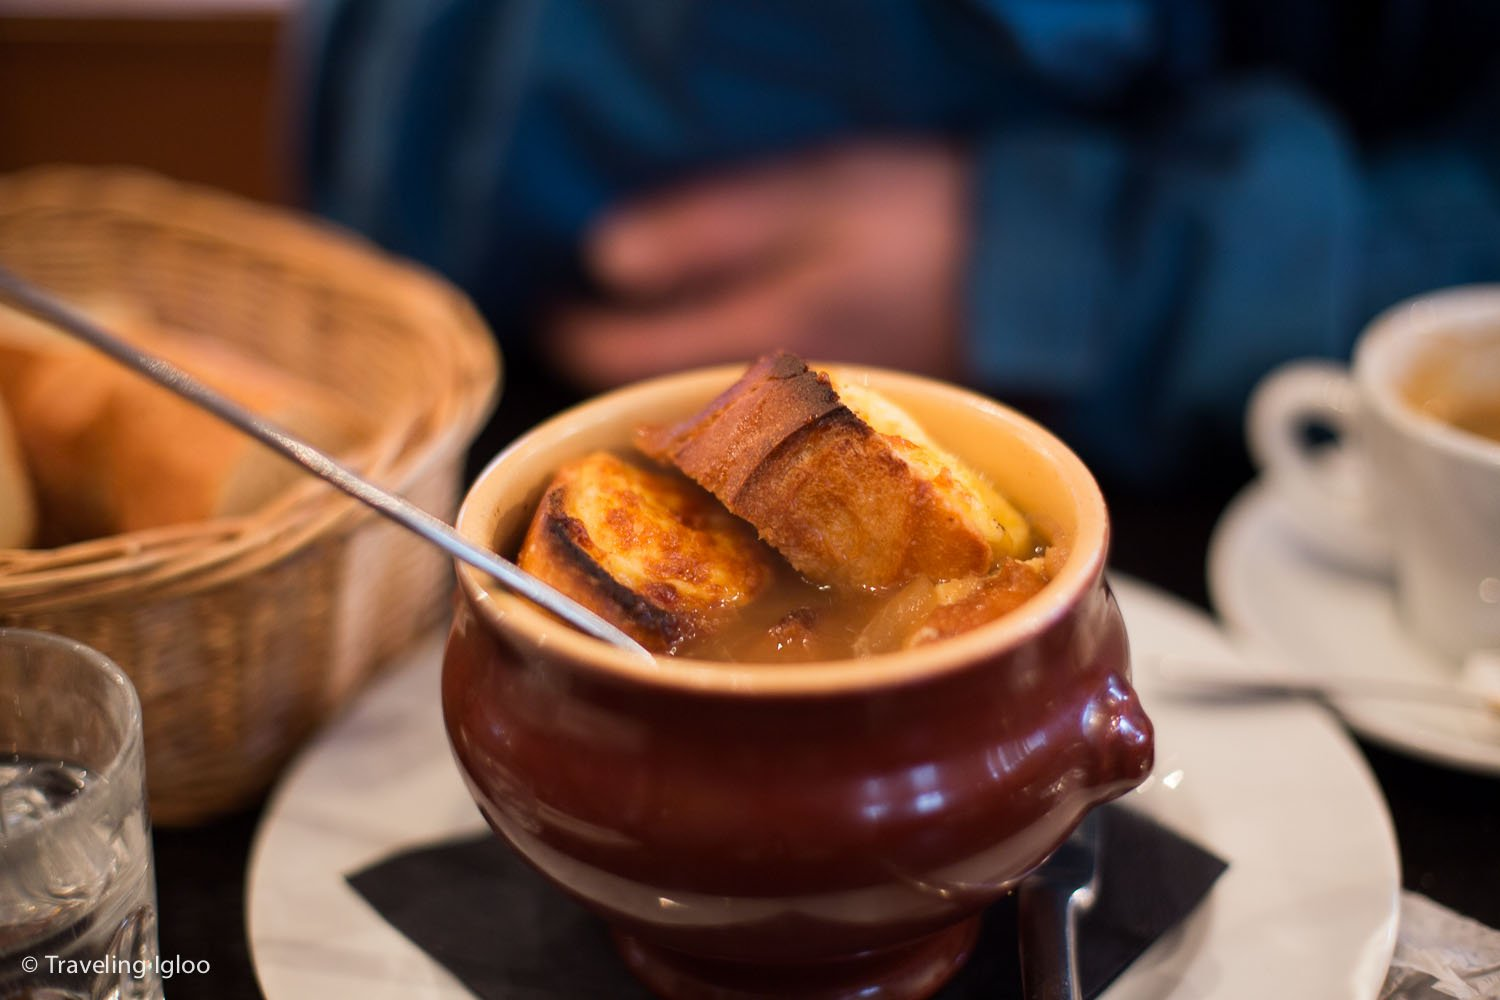 French onion soup. So amazingly delicious.